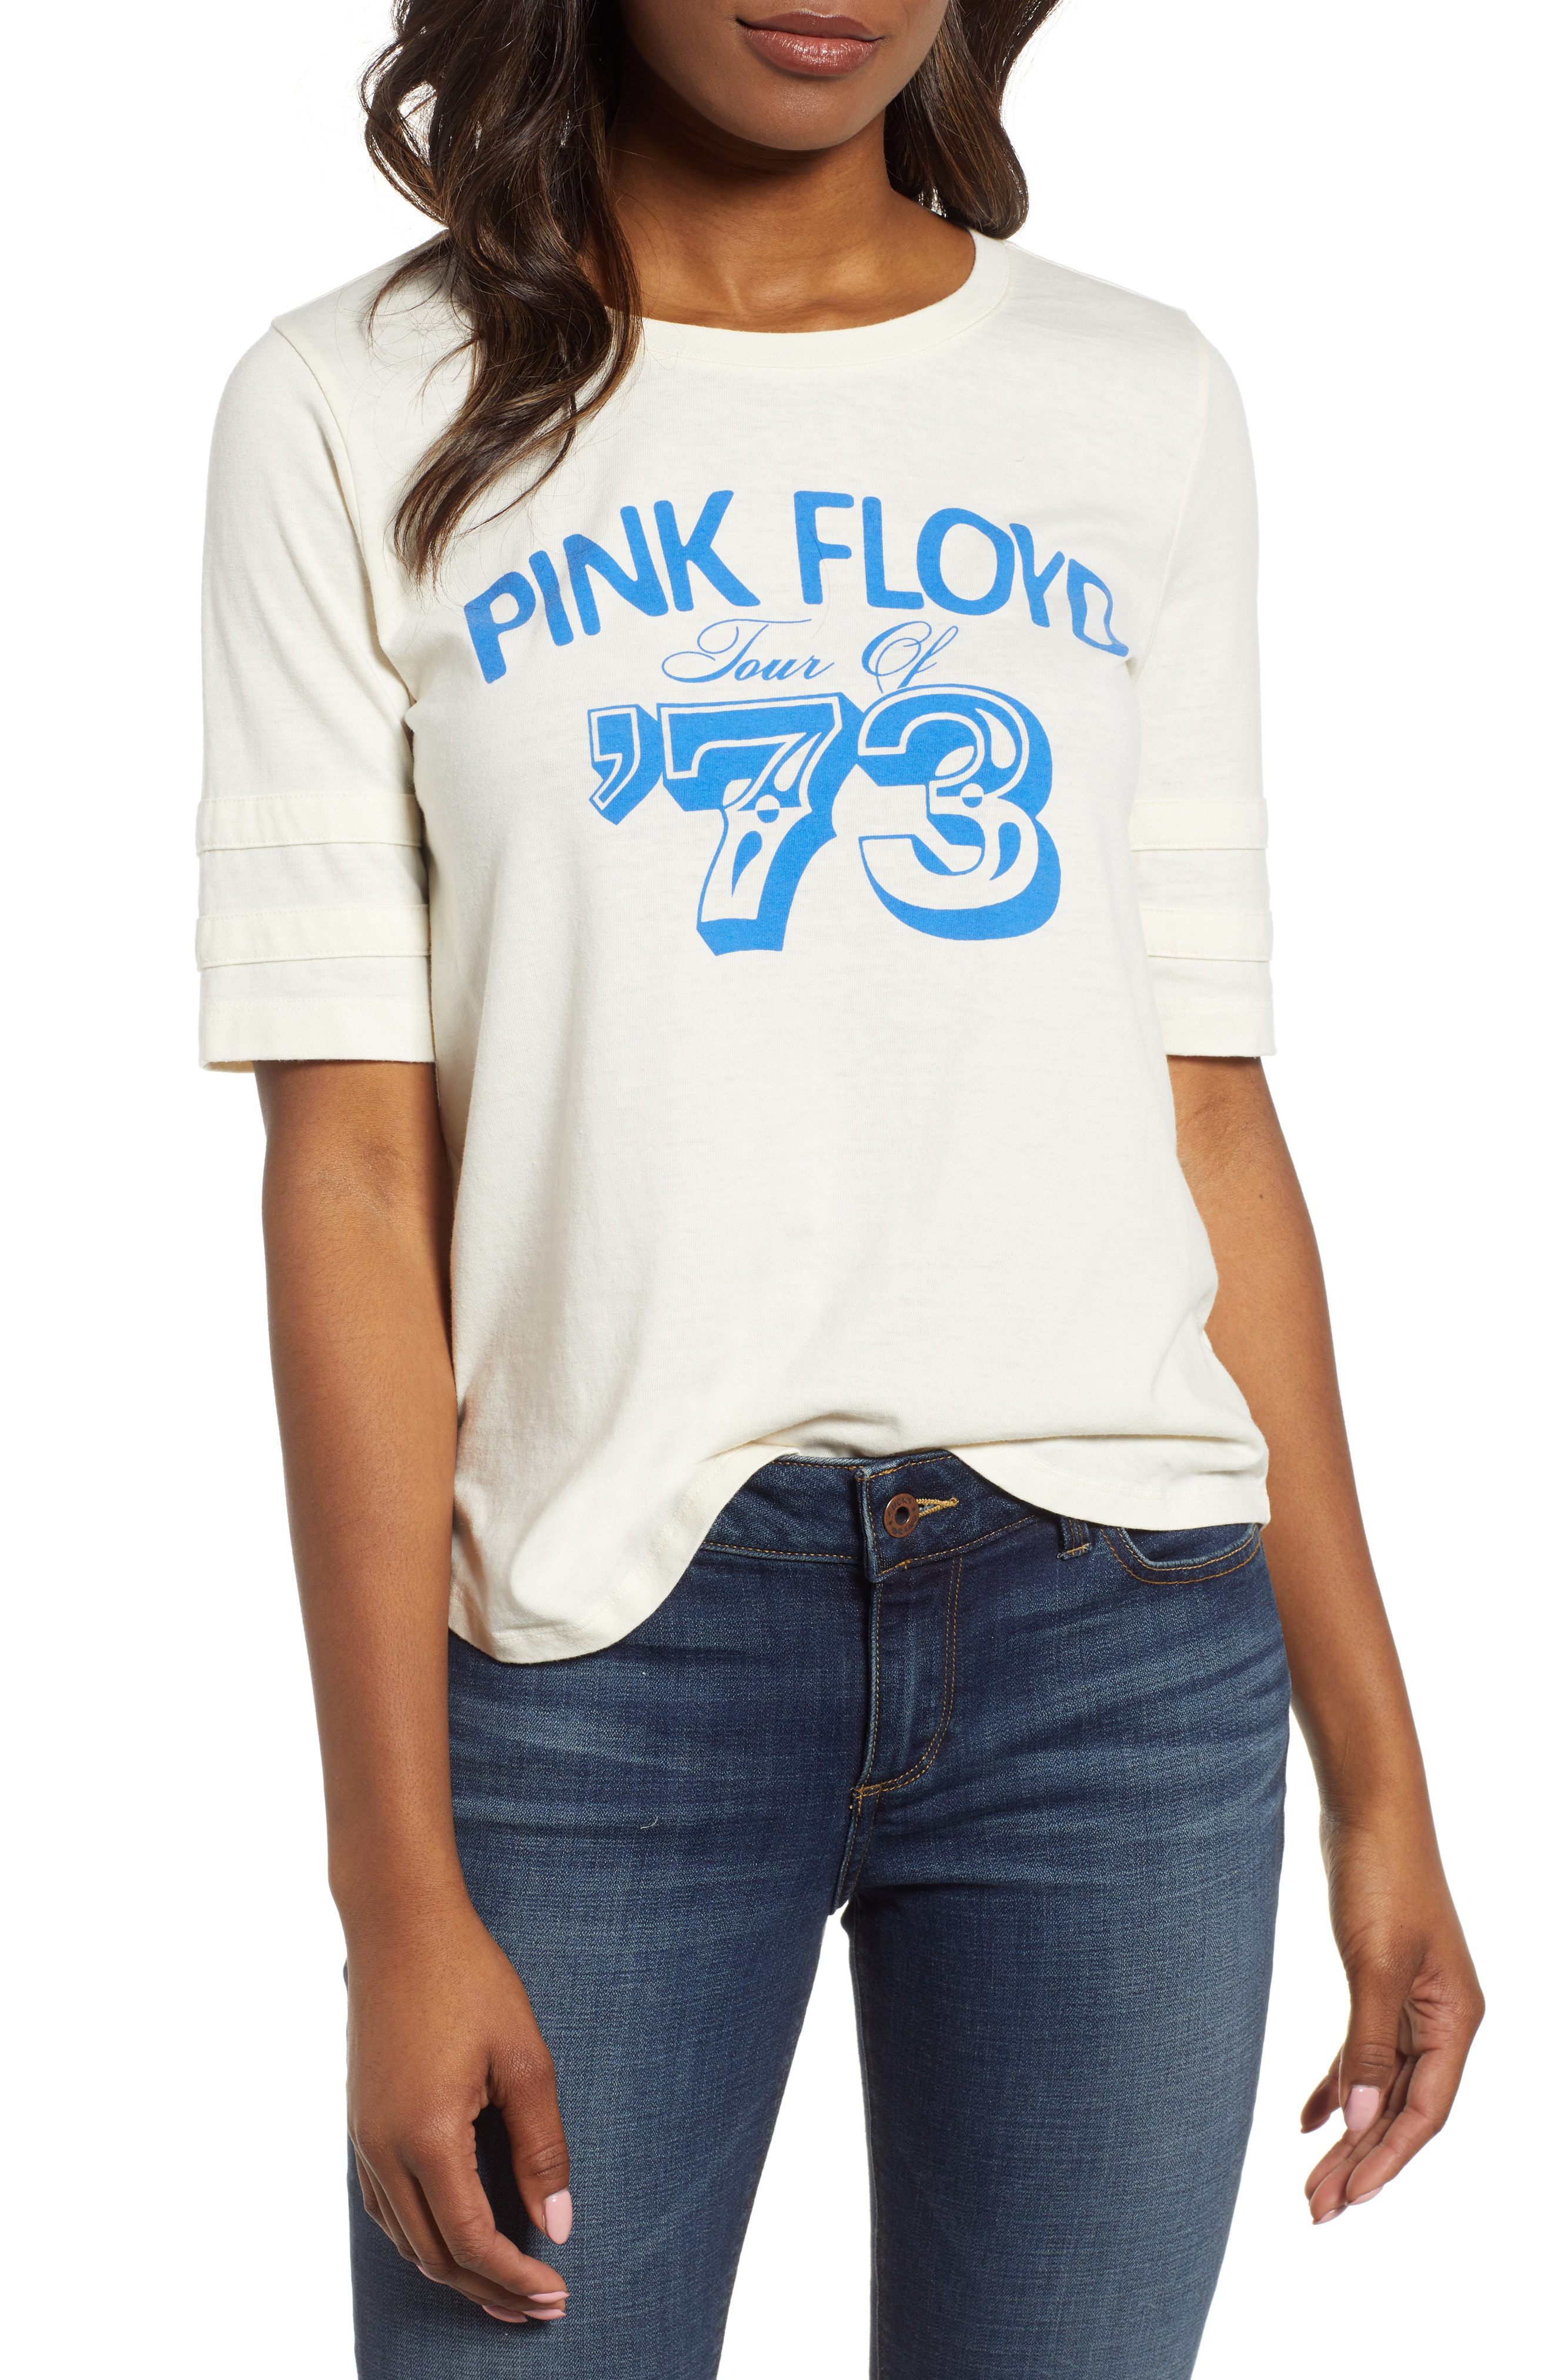 33fae19287a1e Lucky Brand Pink Floyd Football T-Shirt In White